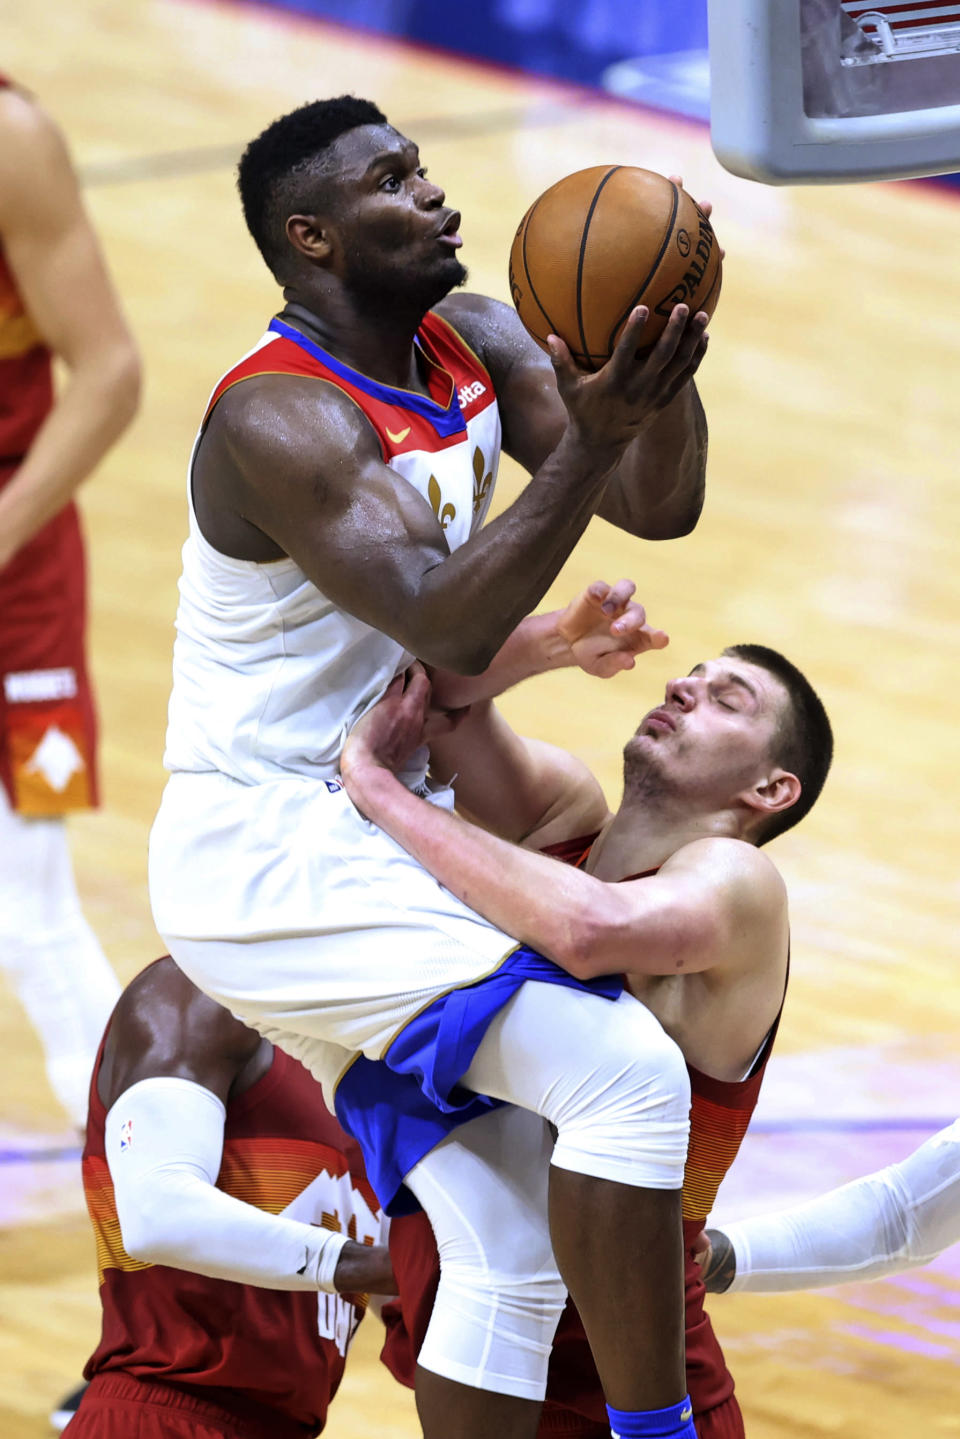 New Orleans Pelicans forward Zion Williamson (1) drives to the basket as Denver Nuggets center Nikola Jokic defends during the second half of an NBA basketball game in New Orleans, Friday, March 26, 2021. (AP Photo/Rusty Costanza)